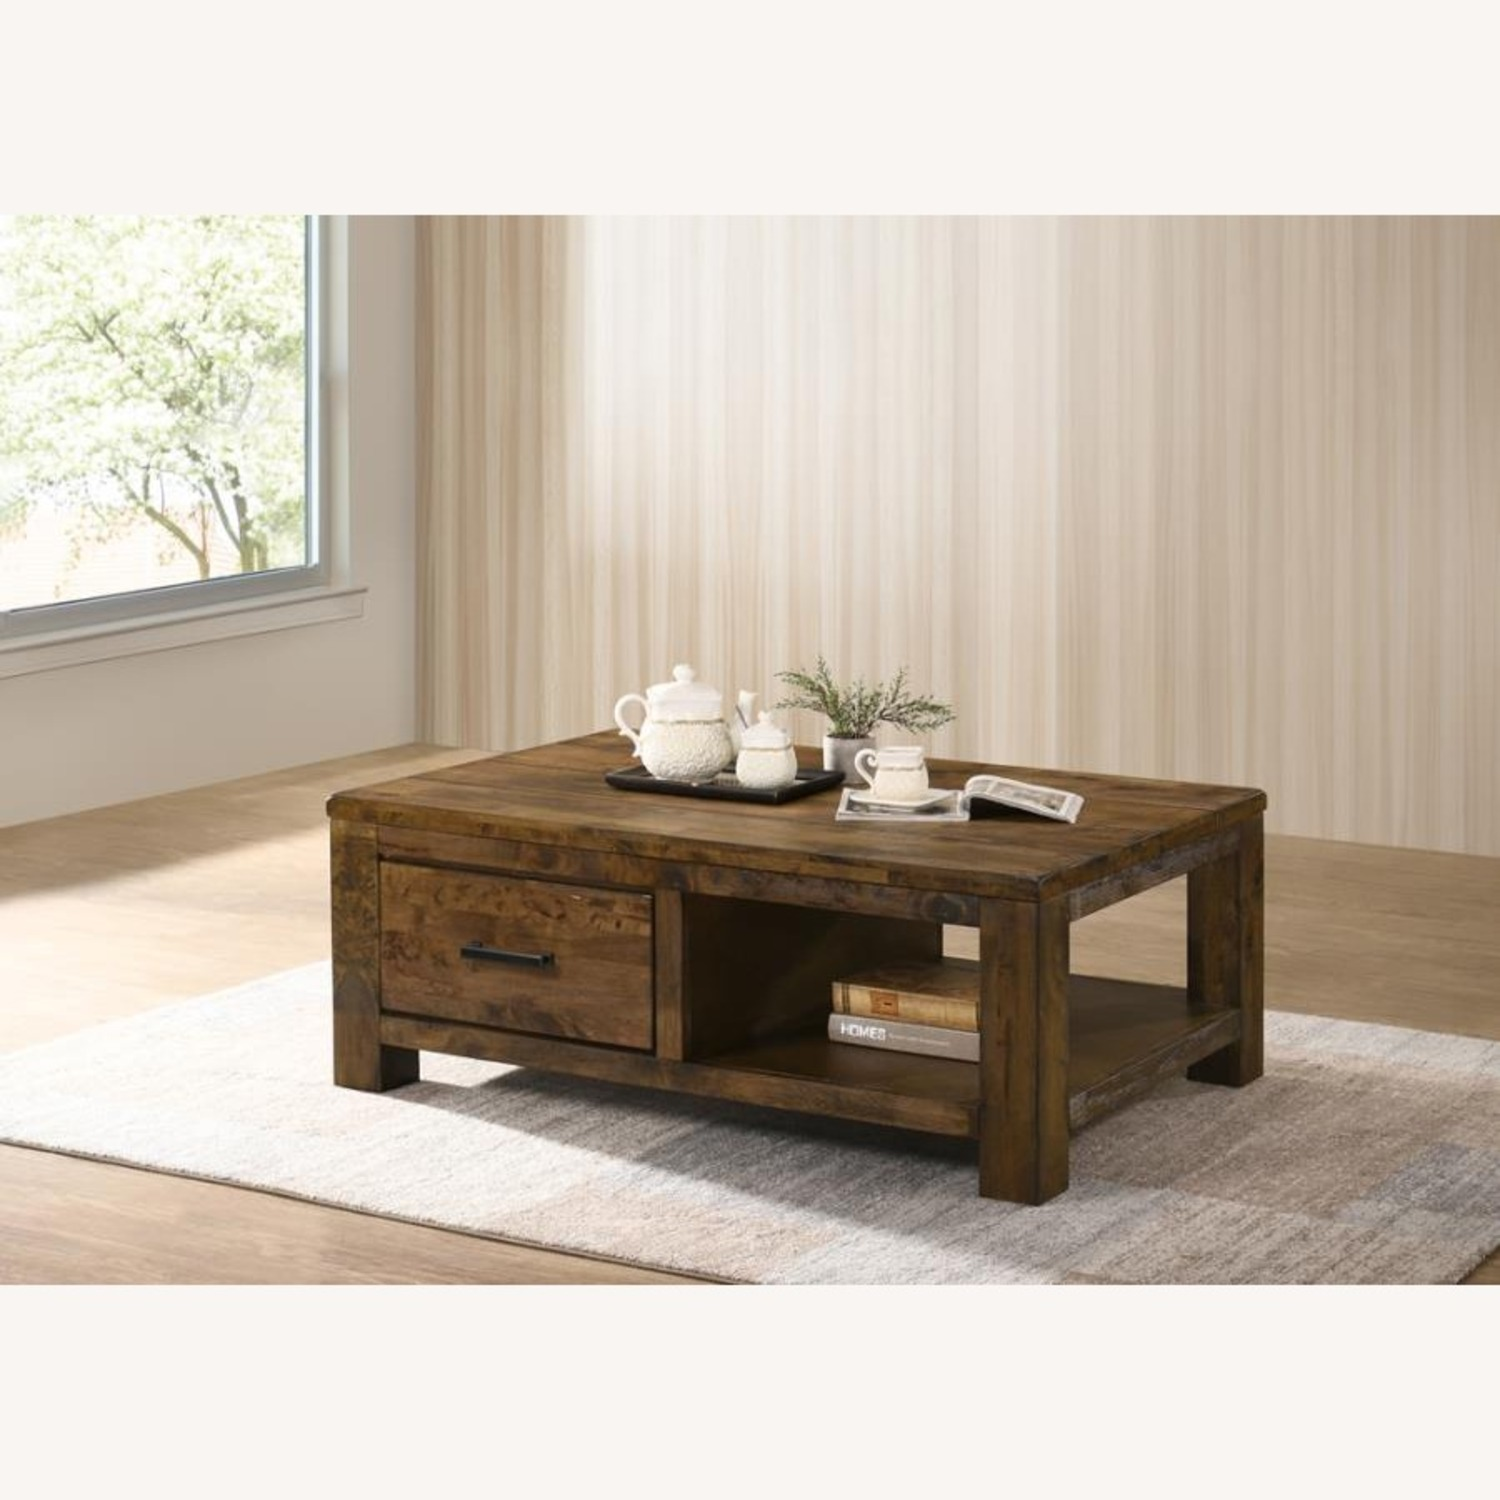 Coffee Table W/ Drawer In Brown Sugar Finish  - image-2